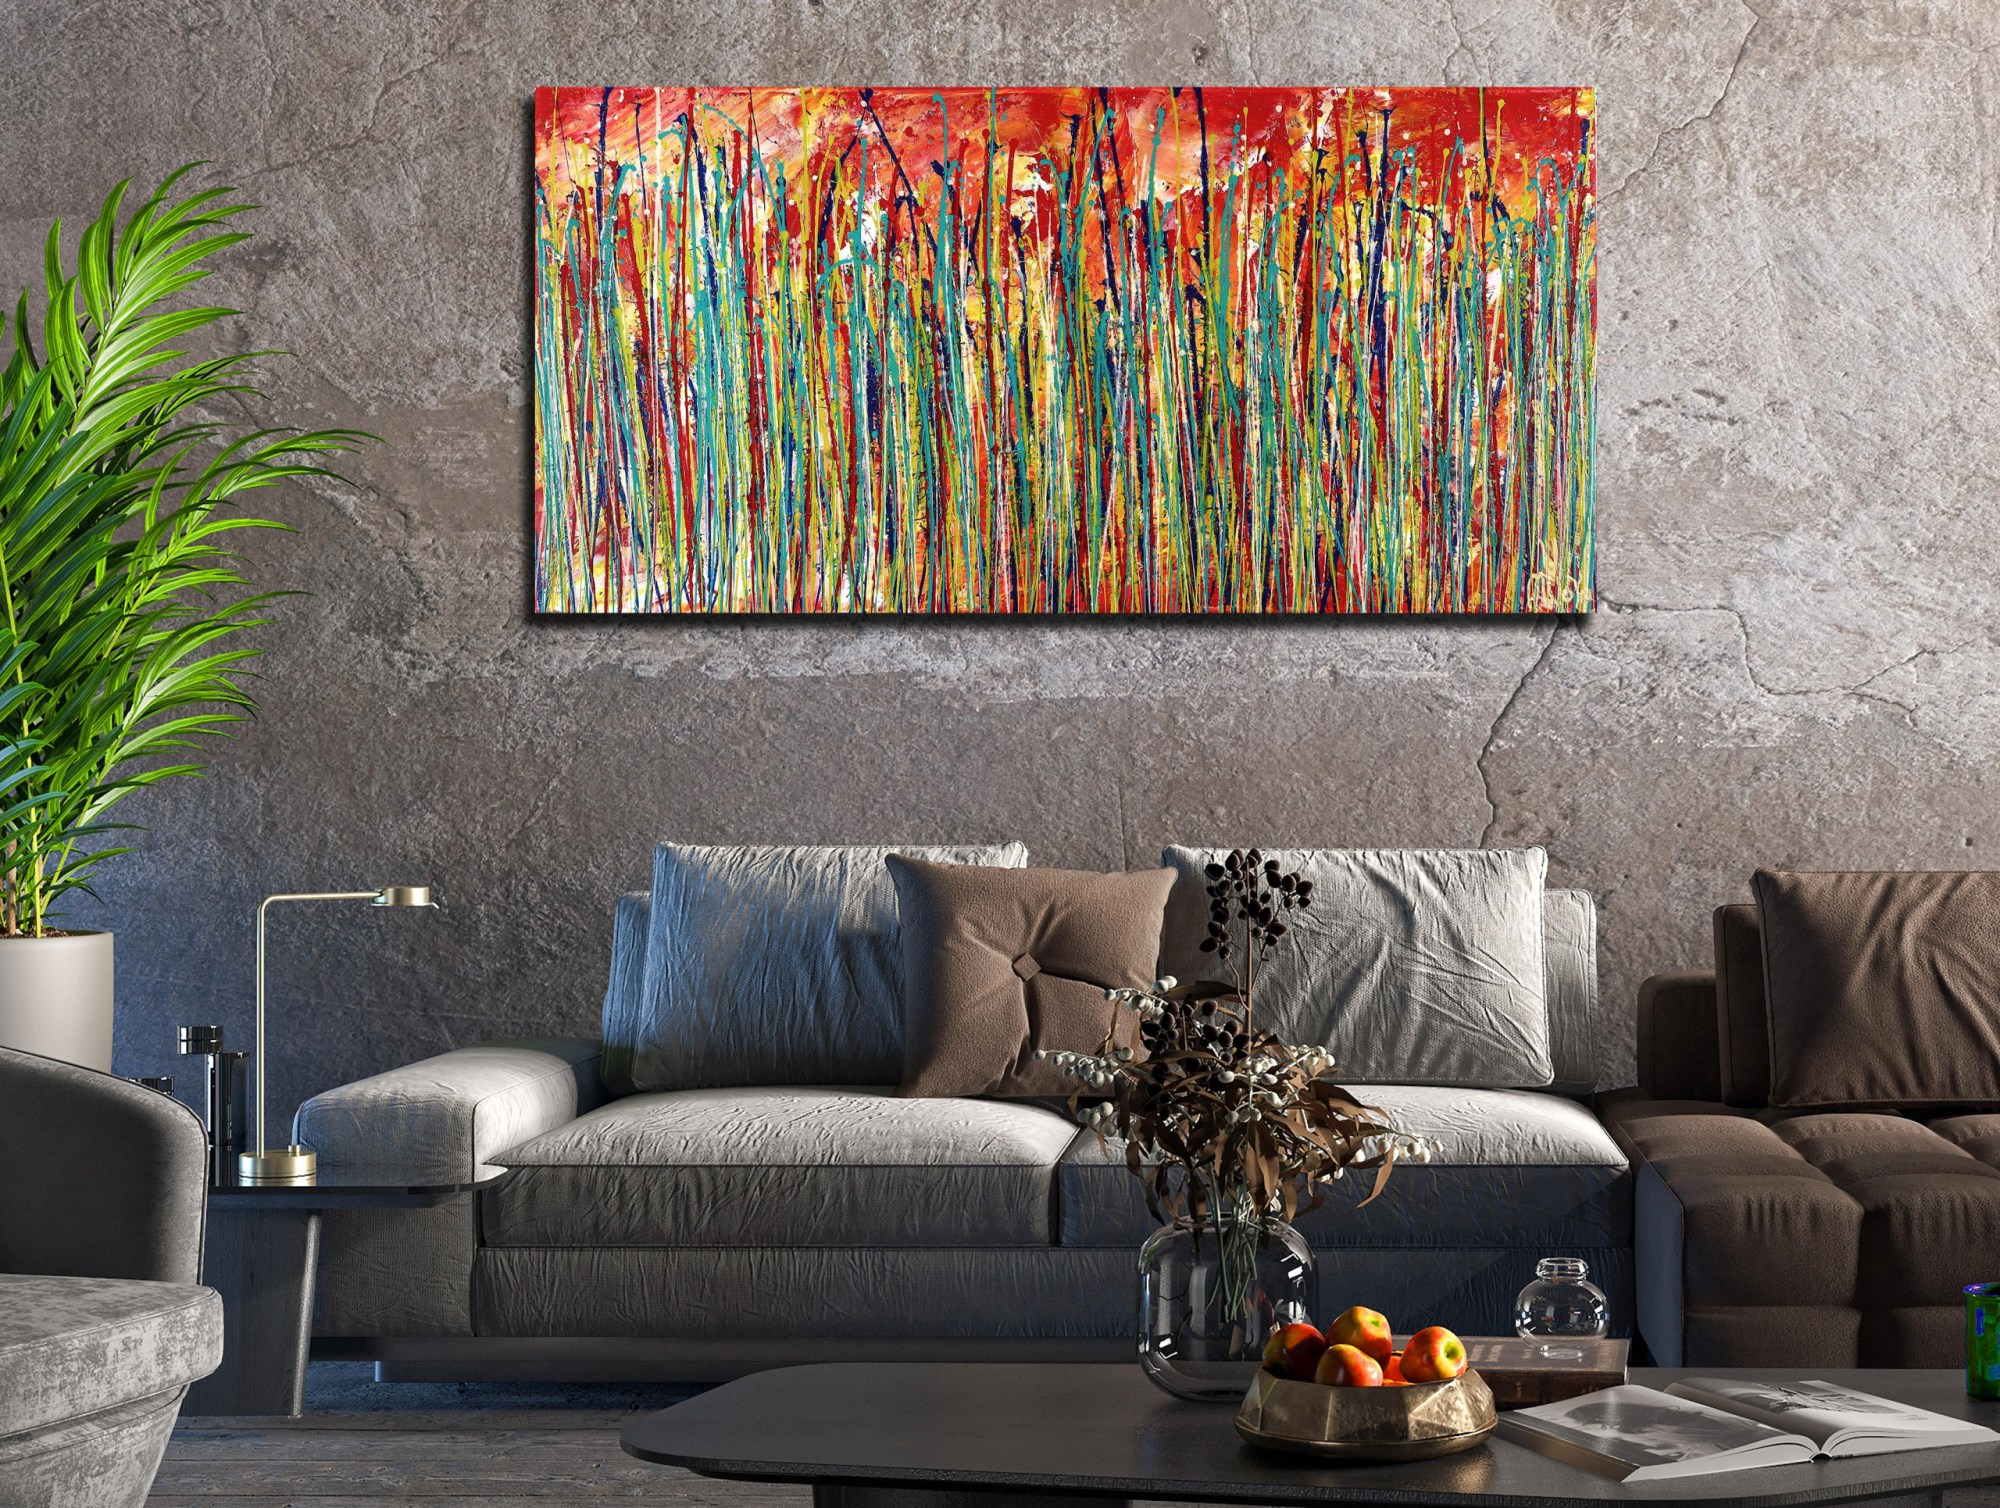 ROOM VIEW / Autumn Motion (2021) - Ready to Hang - 48x24 inches